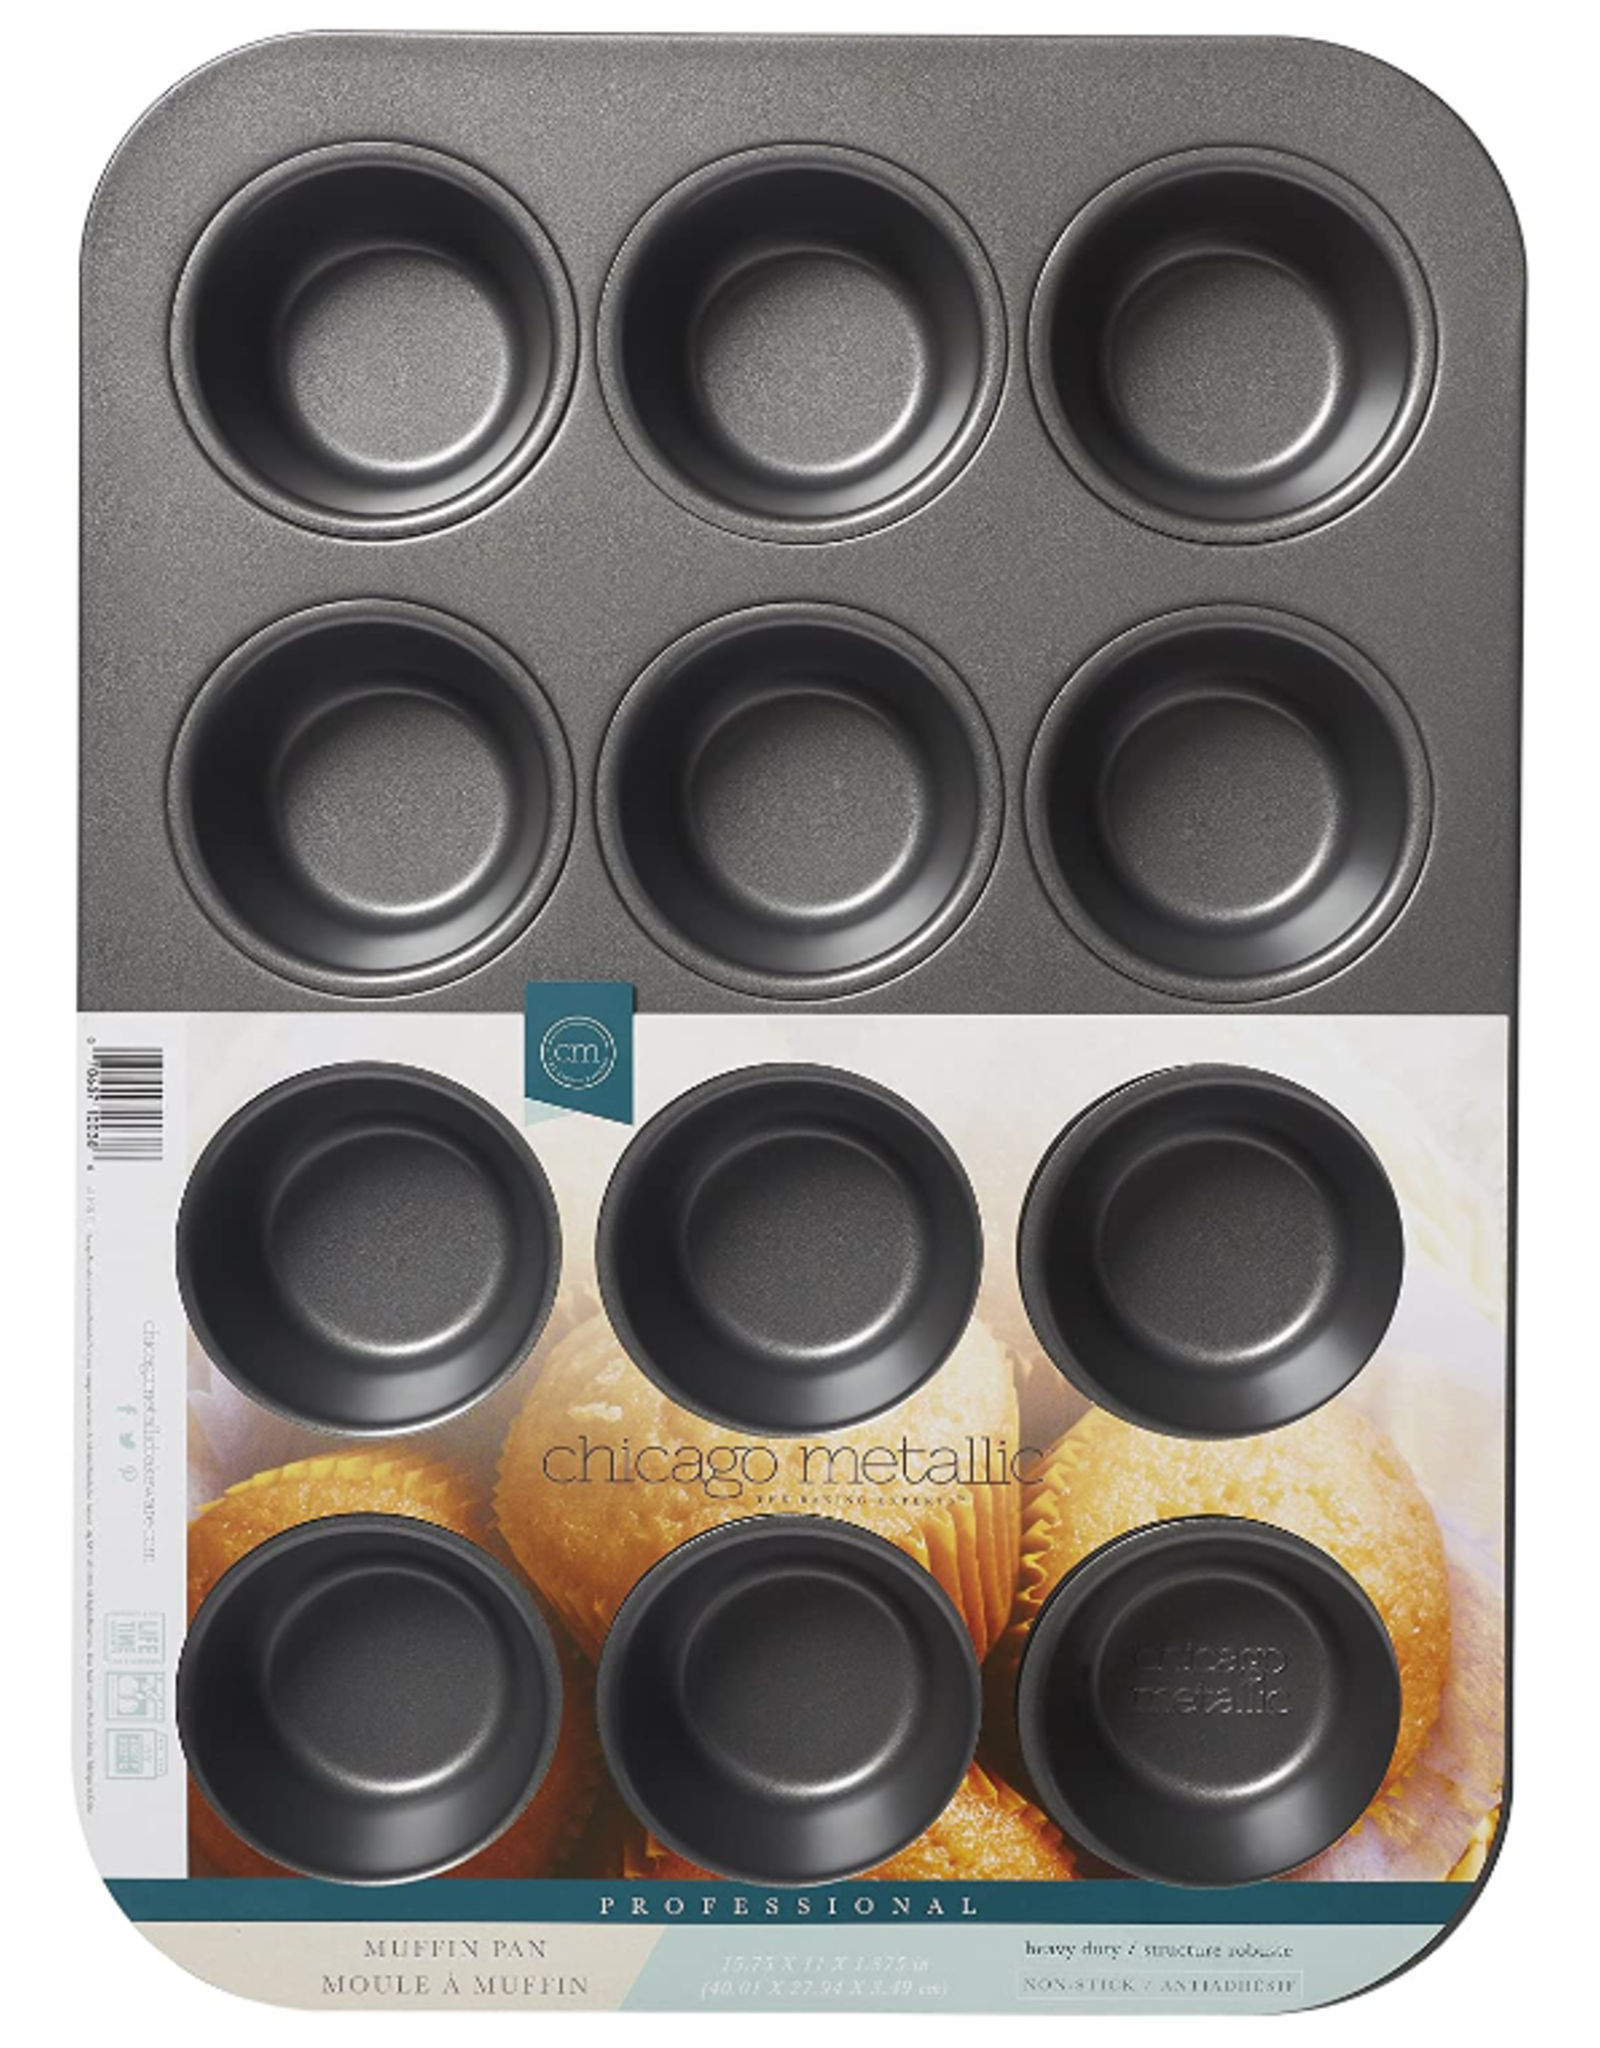 Chicago Metallic ChicMet 12 Cup Muffin Pan